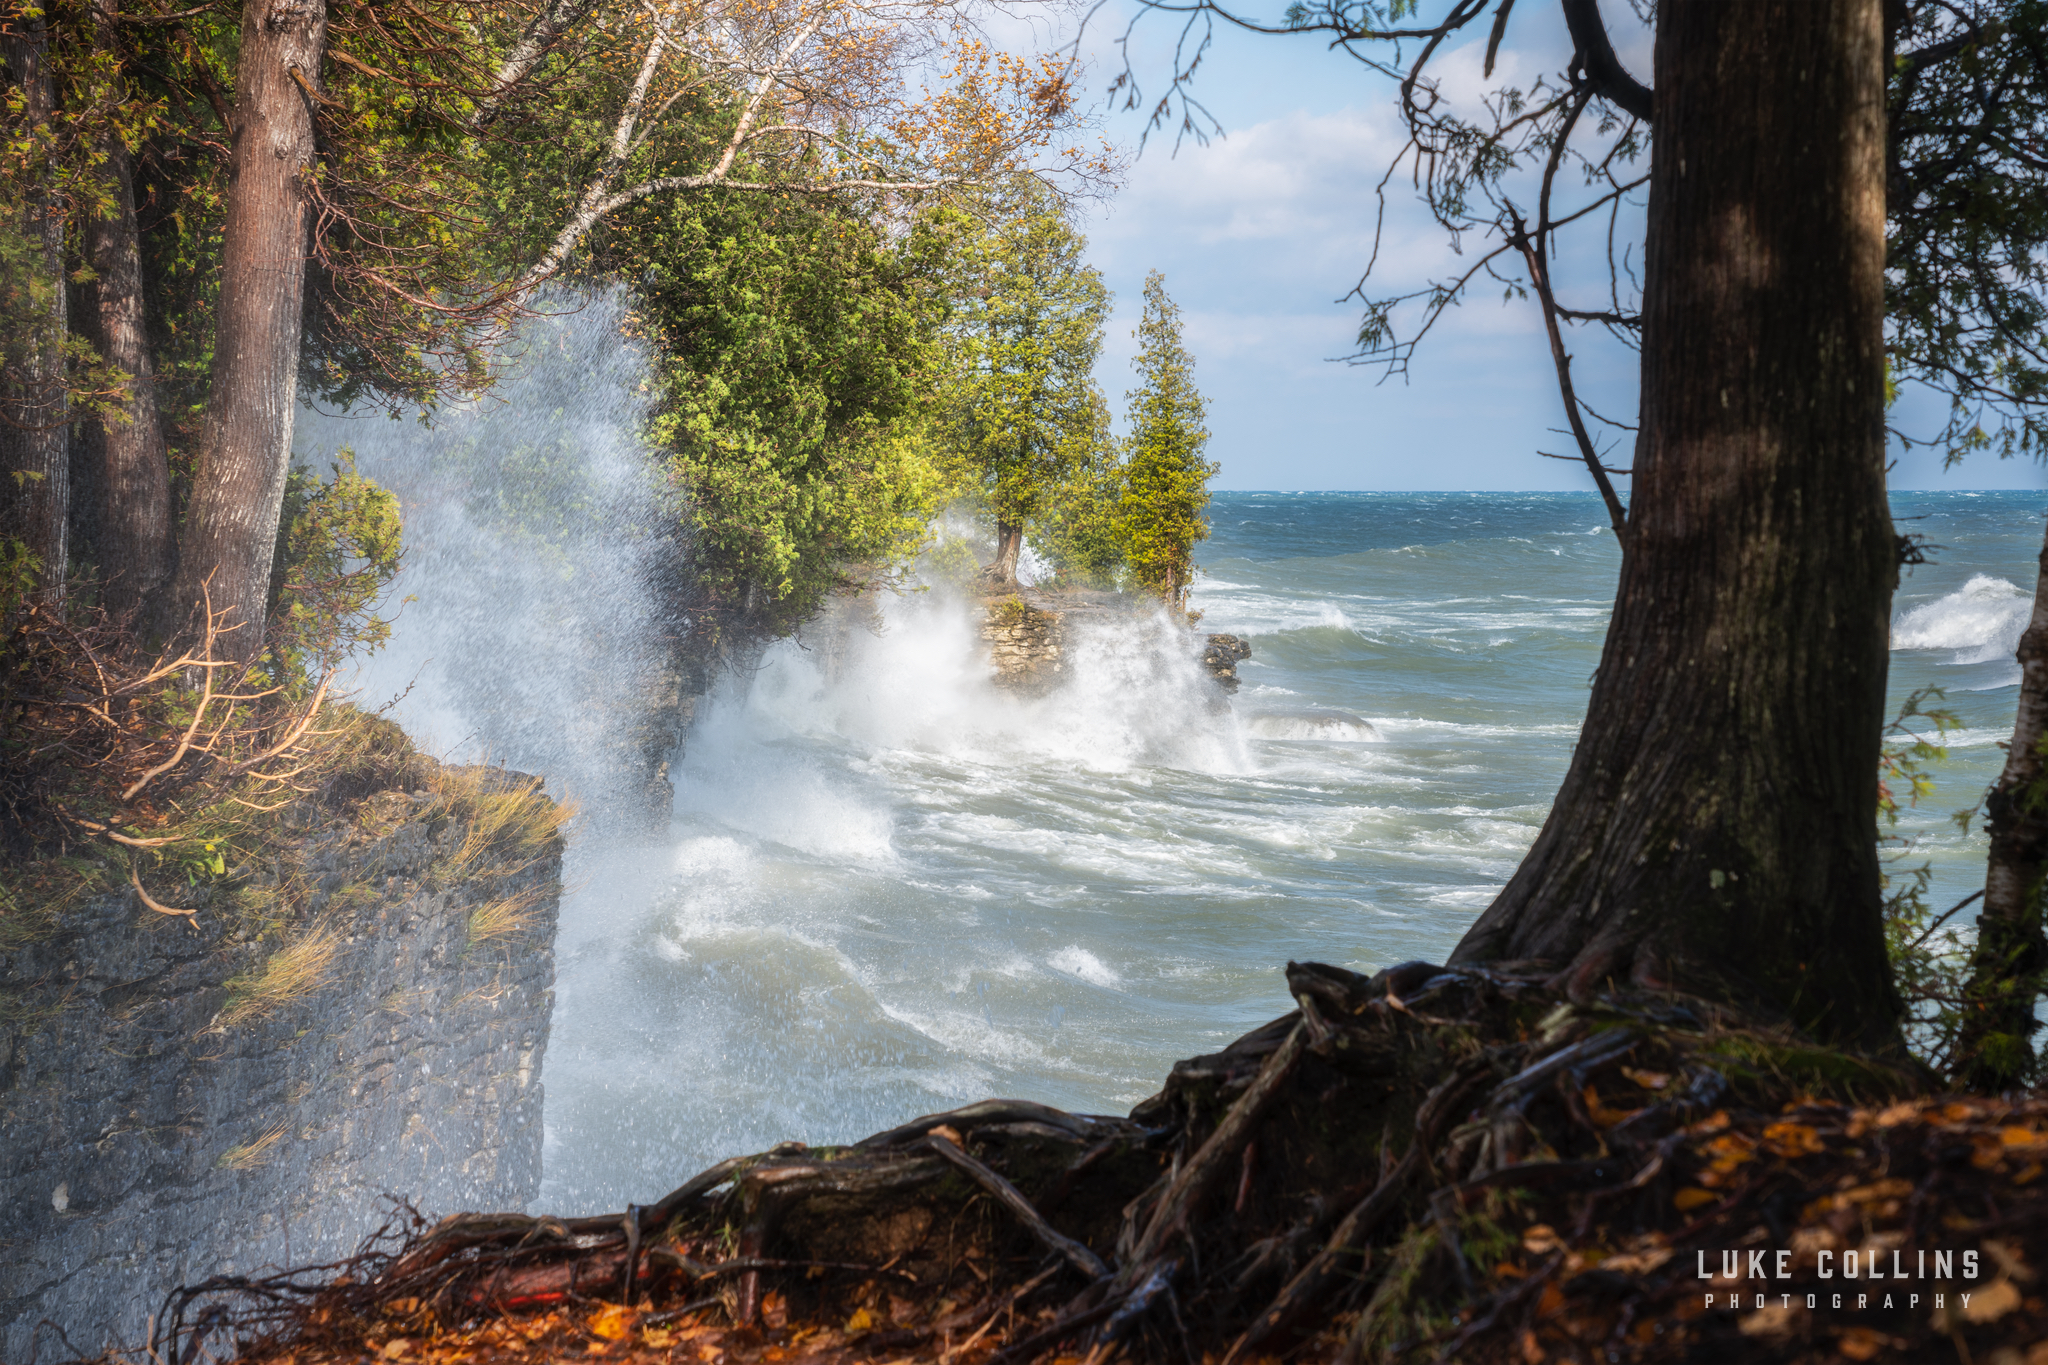 cave point county park, door county, lake michigan, windy lake, waves